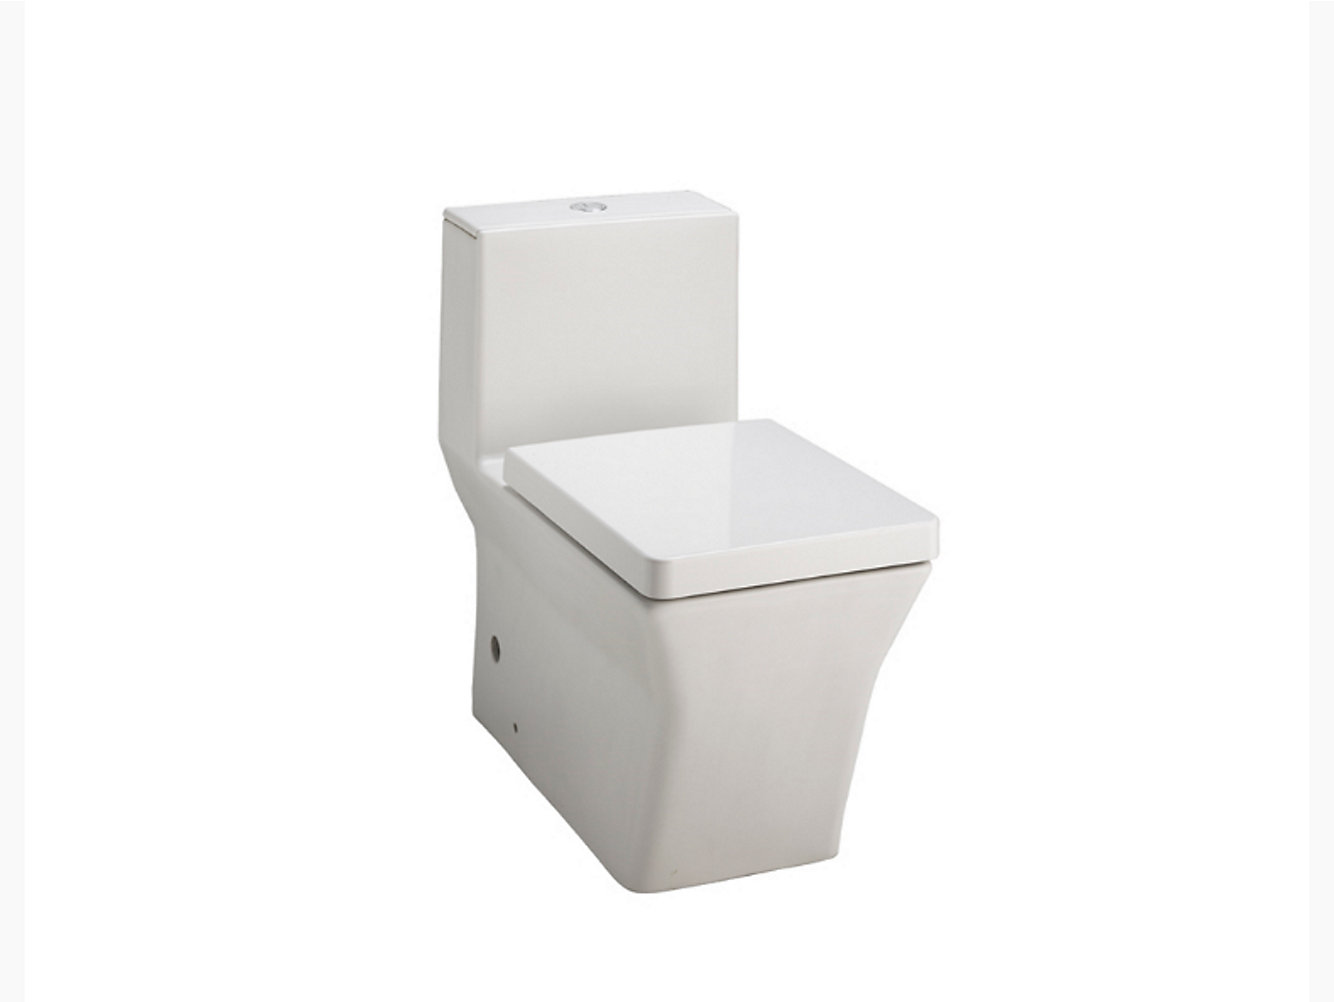 reve skirted two piece dual flush 2 6 4l toilet with s trap 17178t